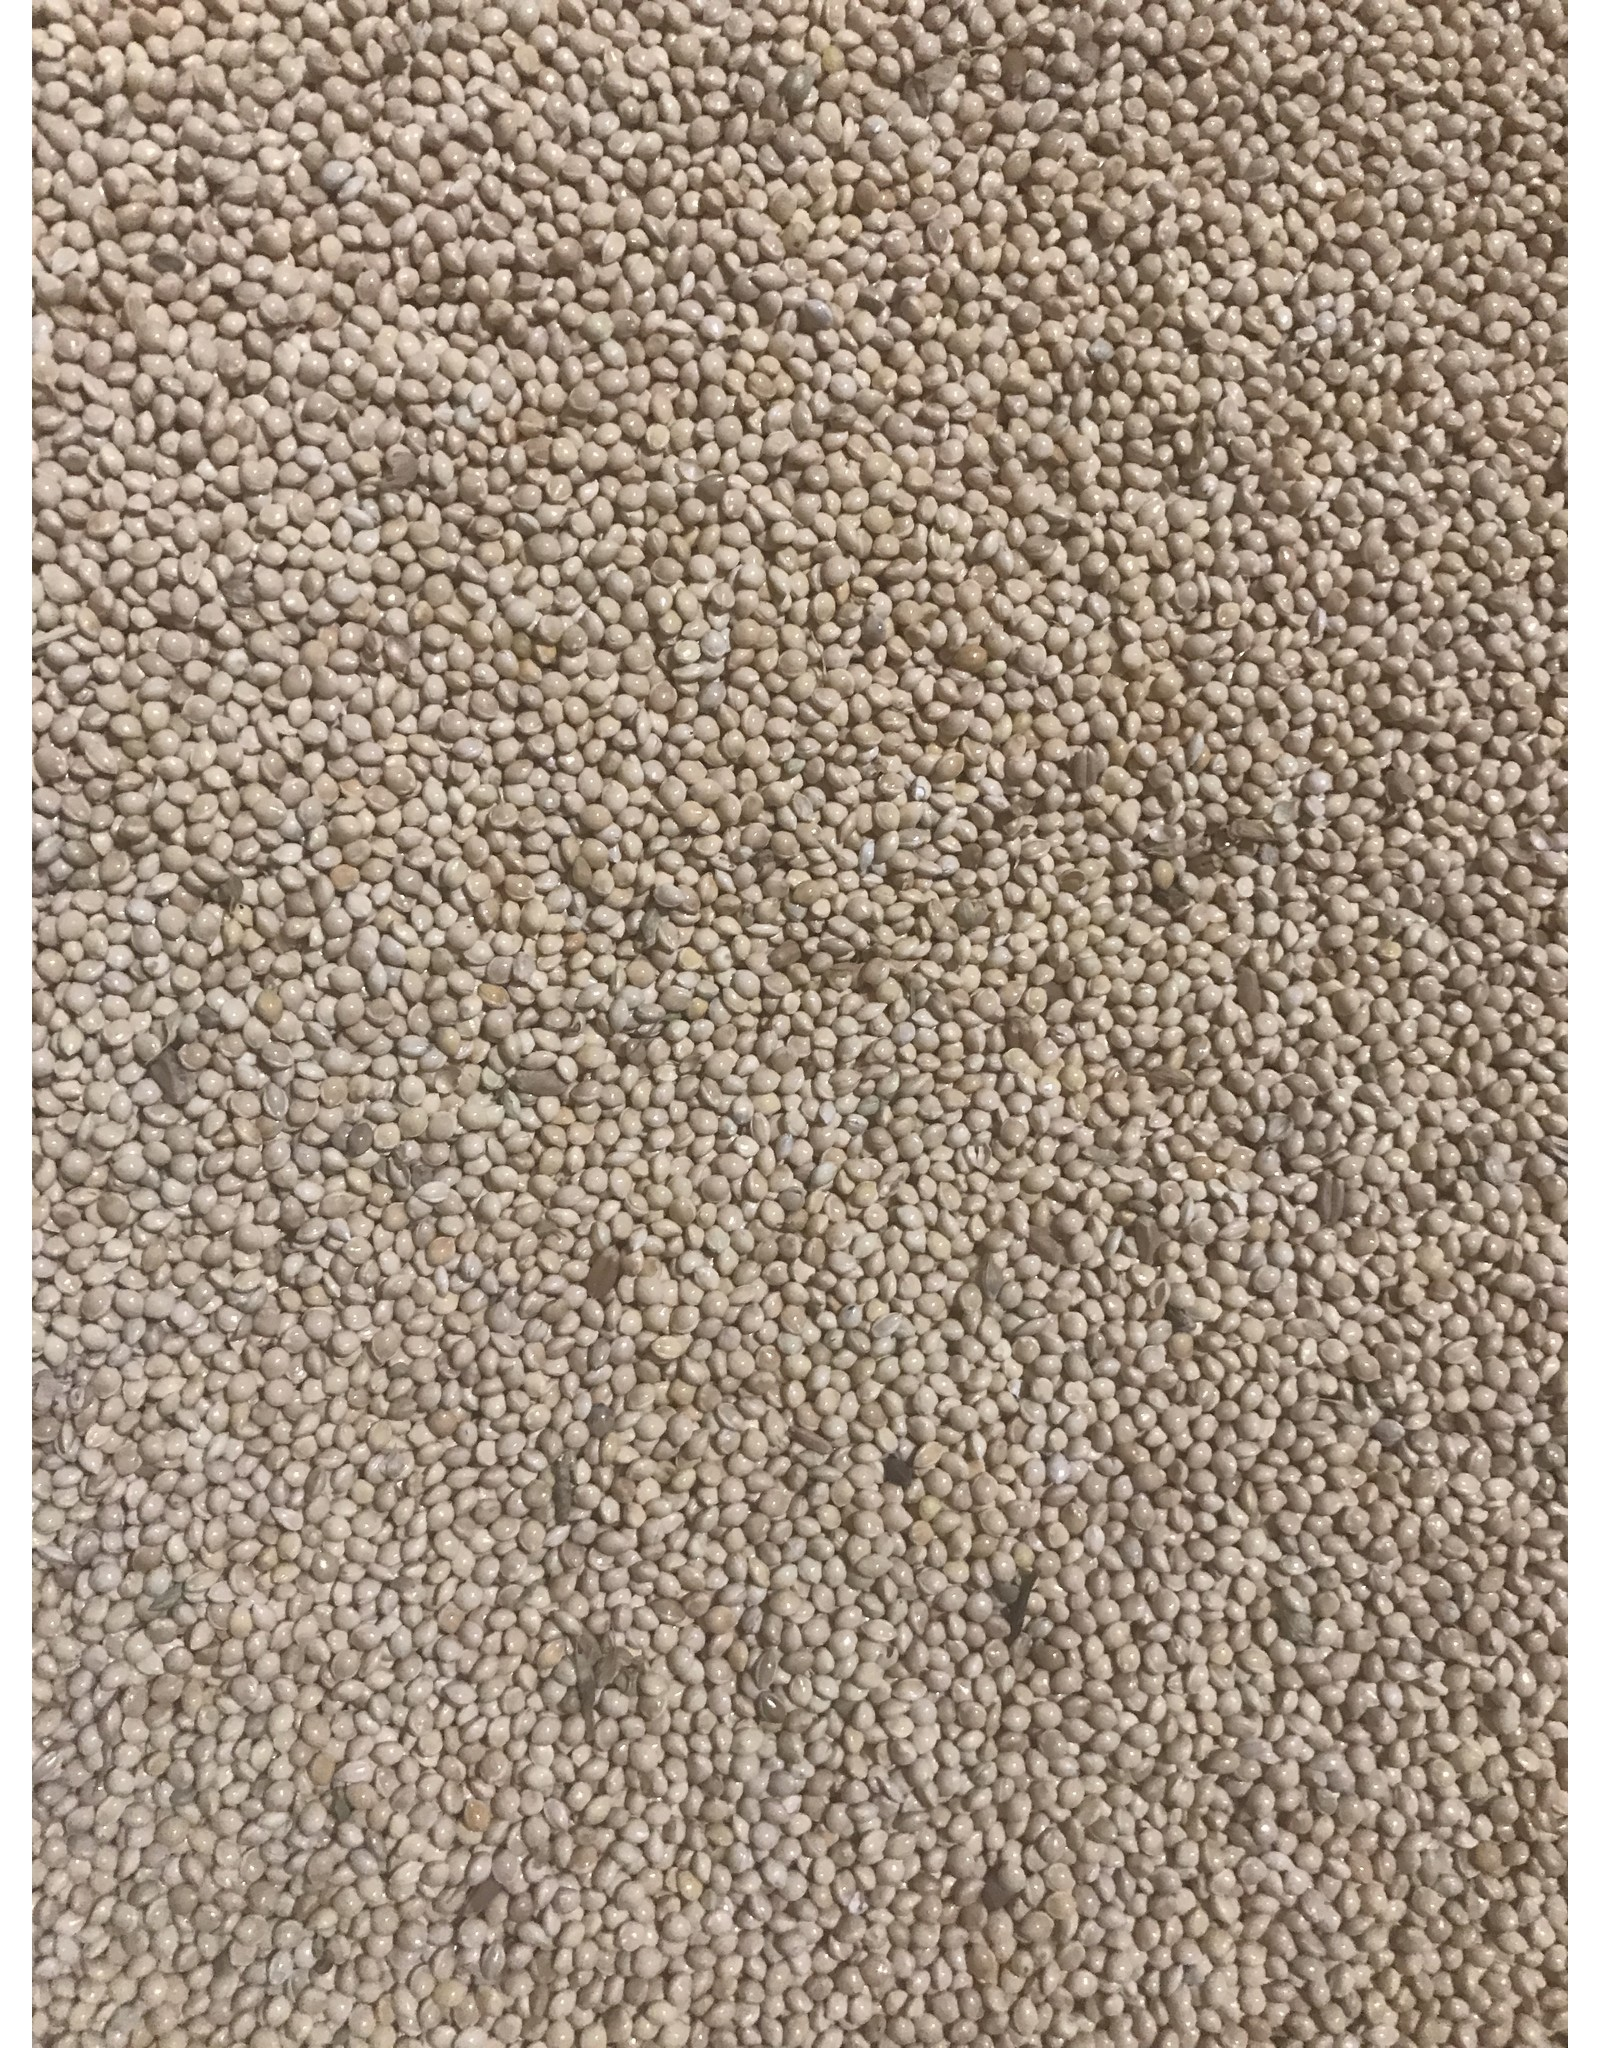 Mill Creek/Seed WMILLET4 4lb bag of white/yellow millet